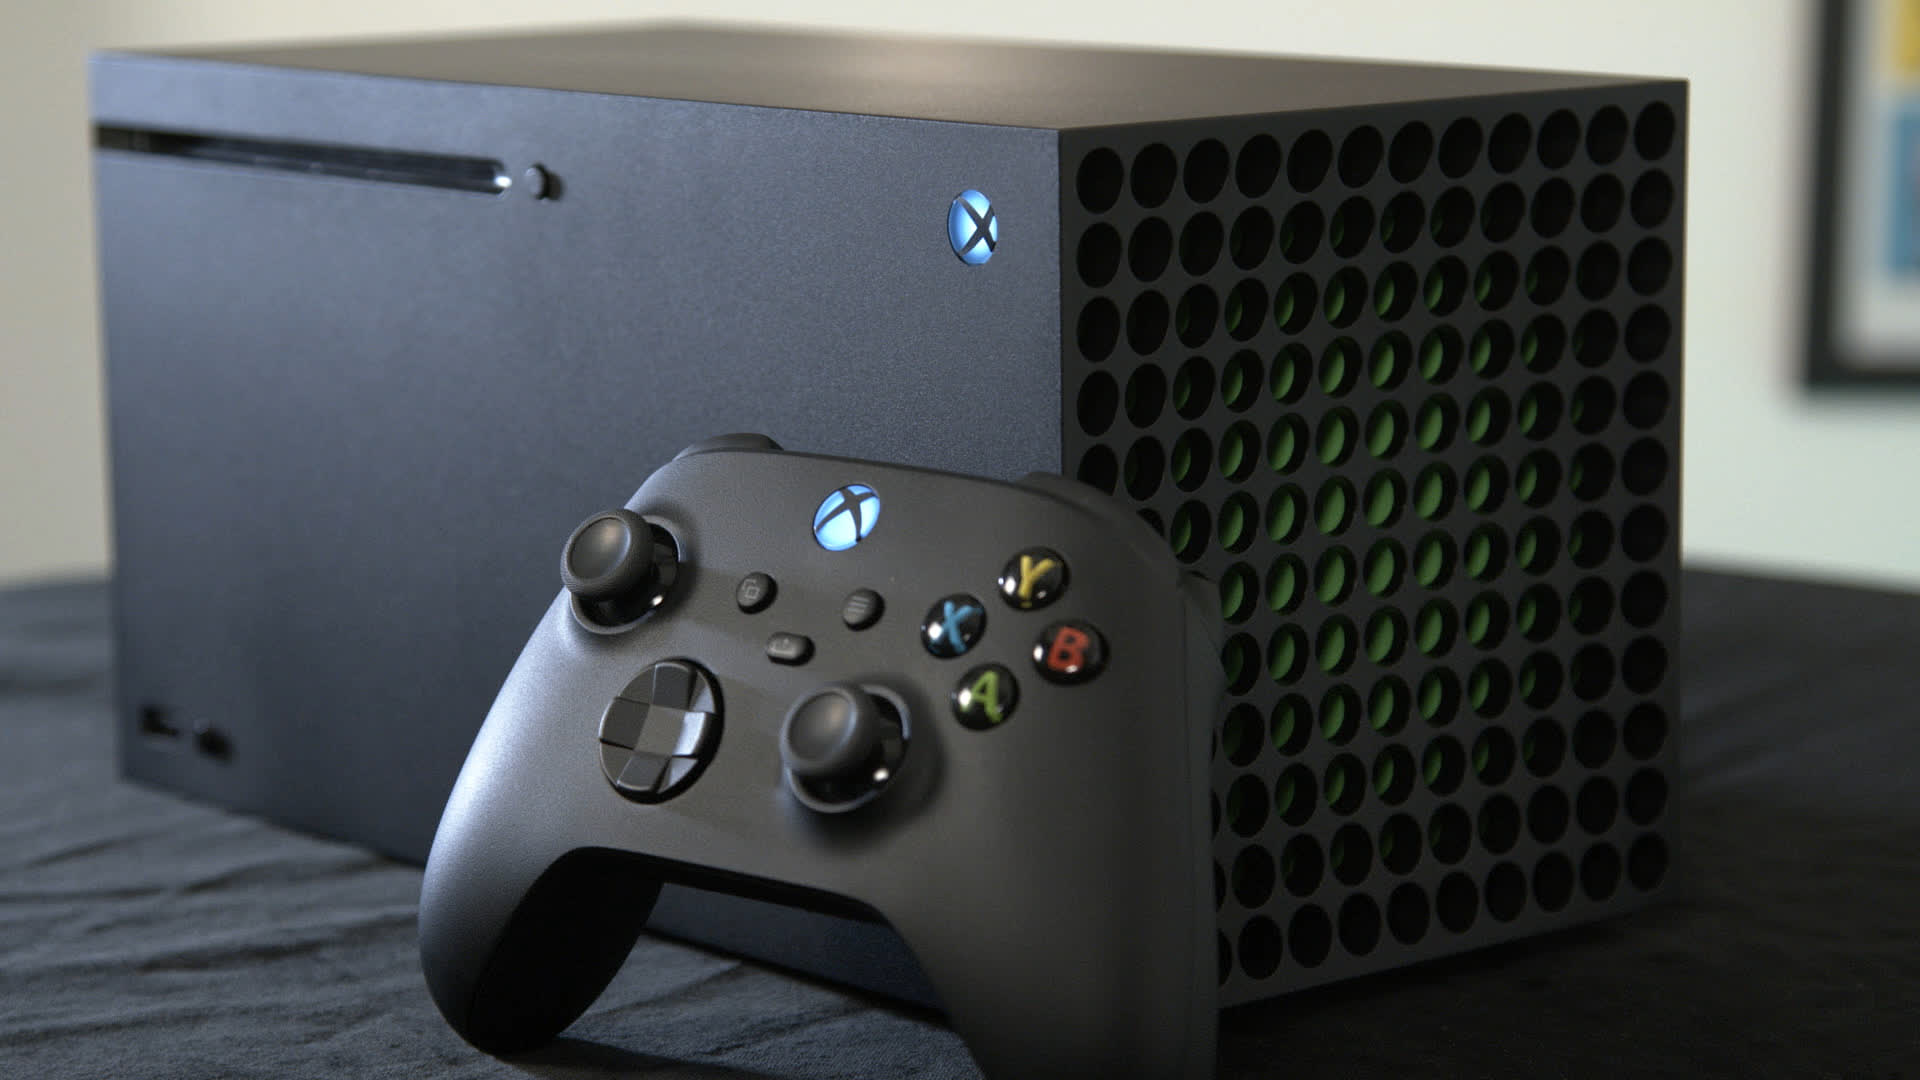 Microsoft is hiring engineers to develop AI-based upscaling technology for Xbox Series X